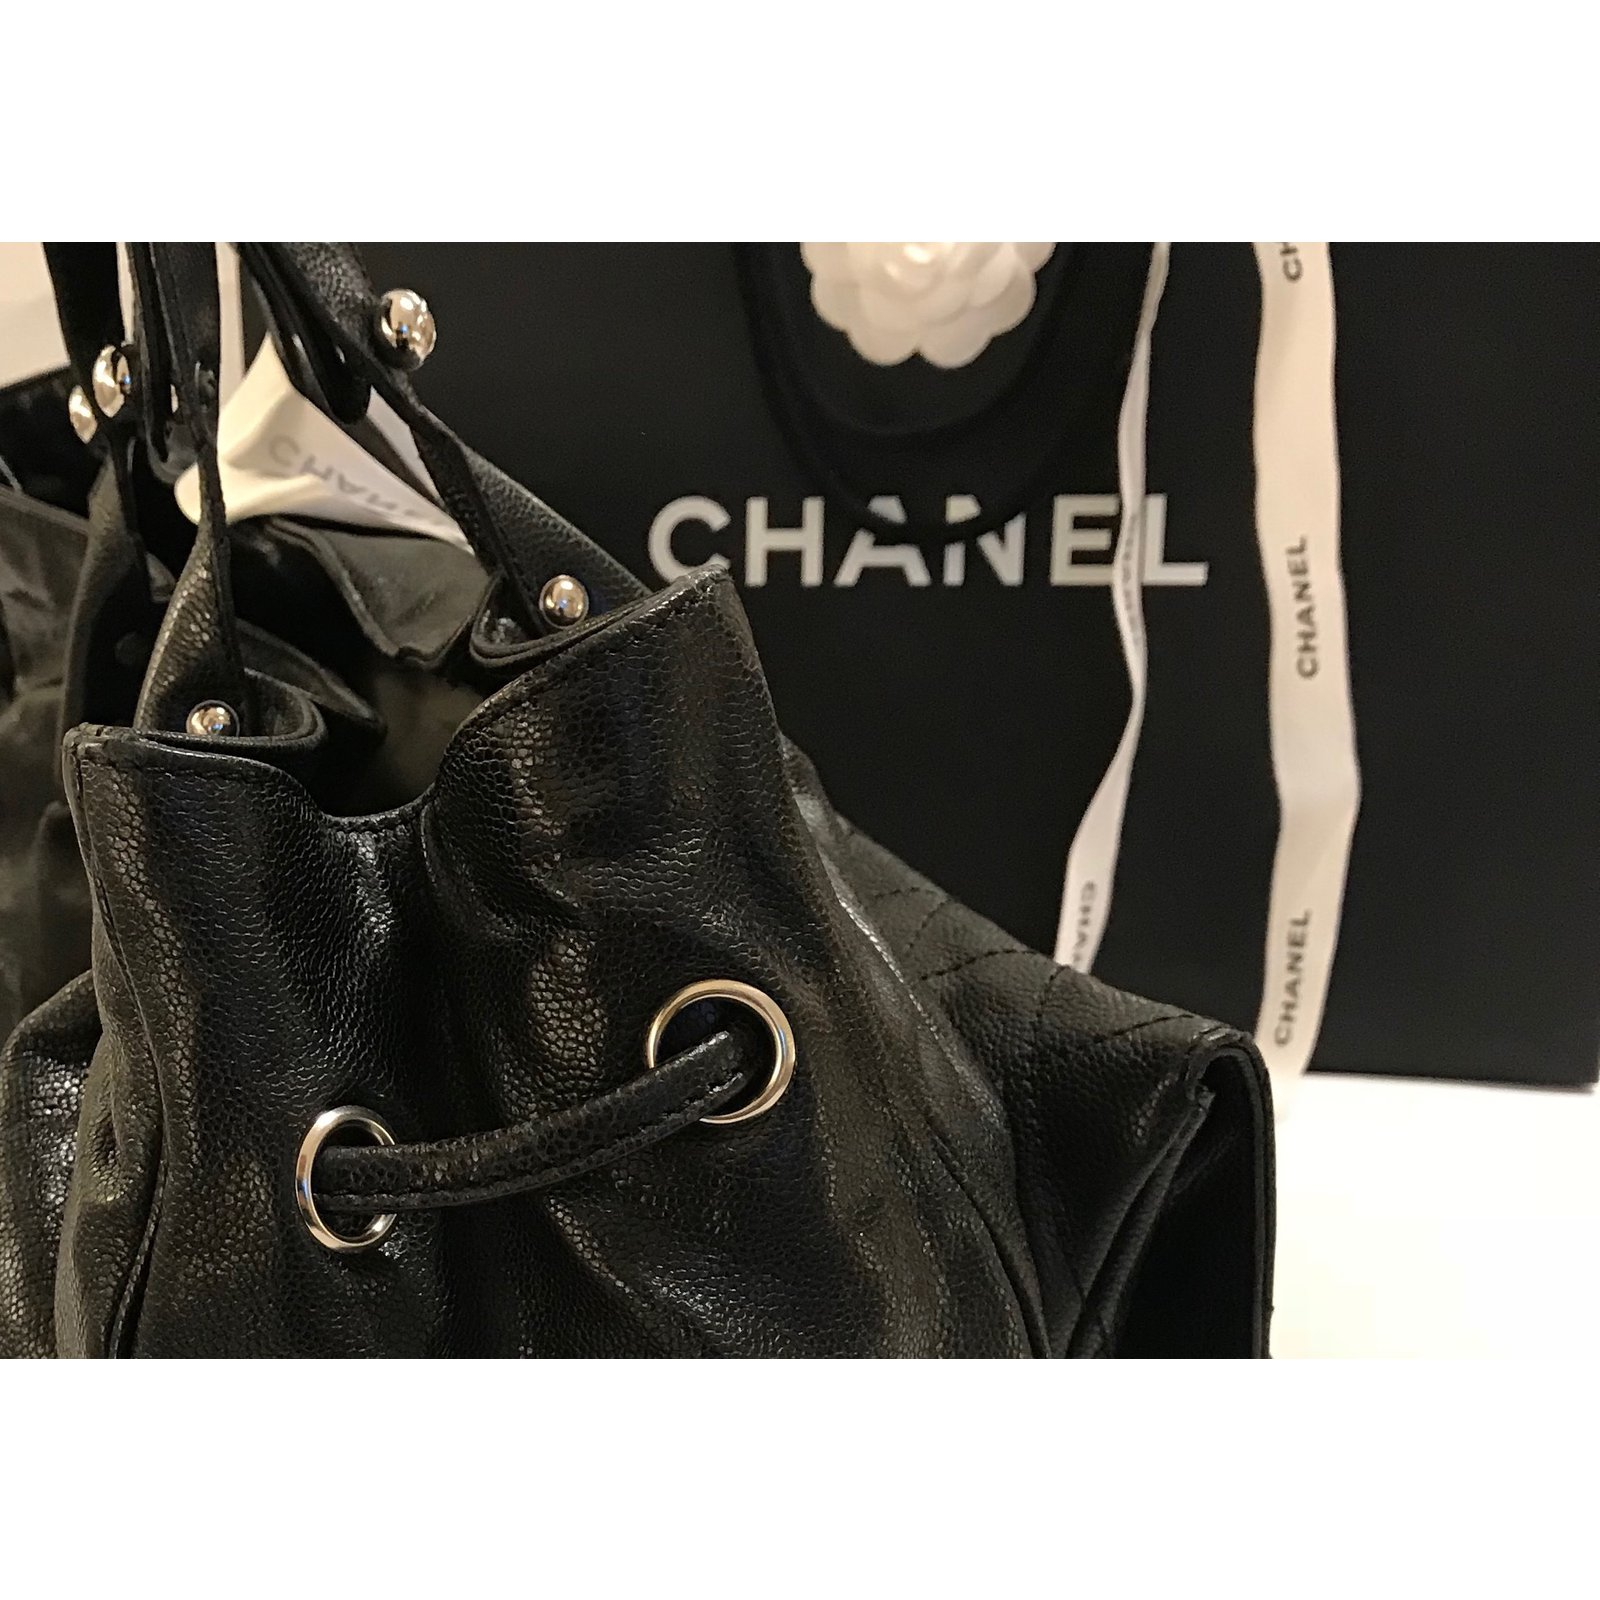 a0517b253655 Chanel CHANEL BLACK GLAZED CAVIAR POCKET-IN-THE-CITY 2.55MODEL LARGE TOTE  BAG Handbags Leather Black ref.56875 - Joli Closet